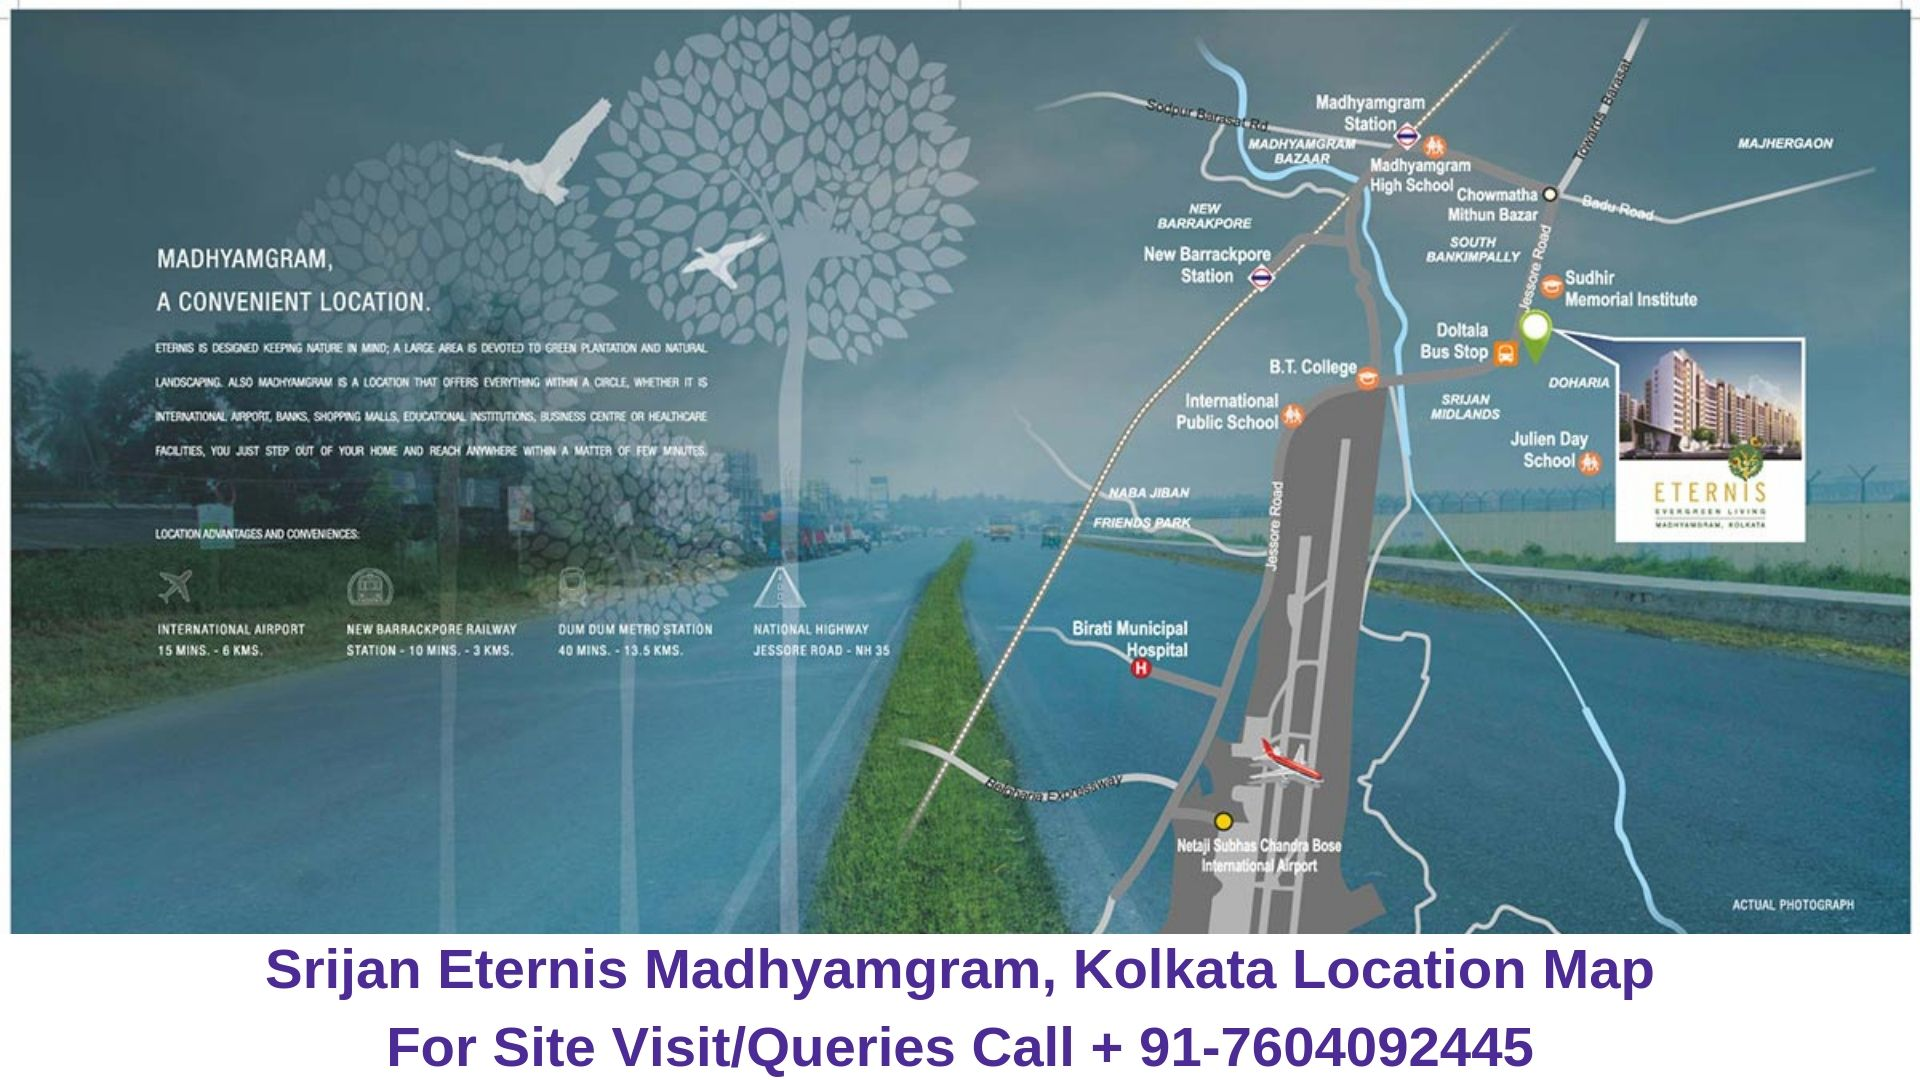 Srijan Eternis Madhyamgram, Kolkata Location Map